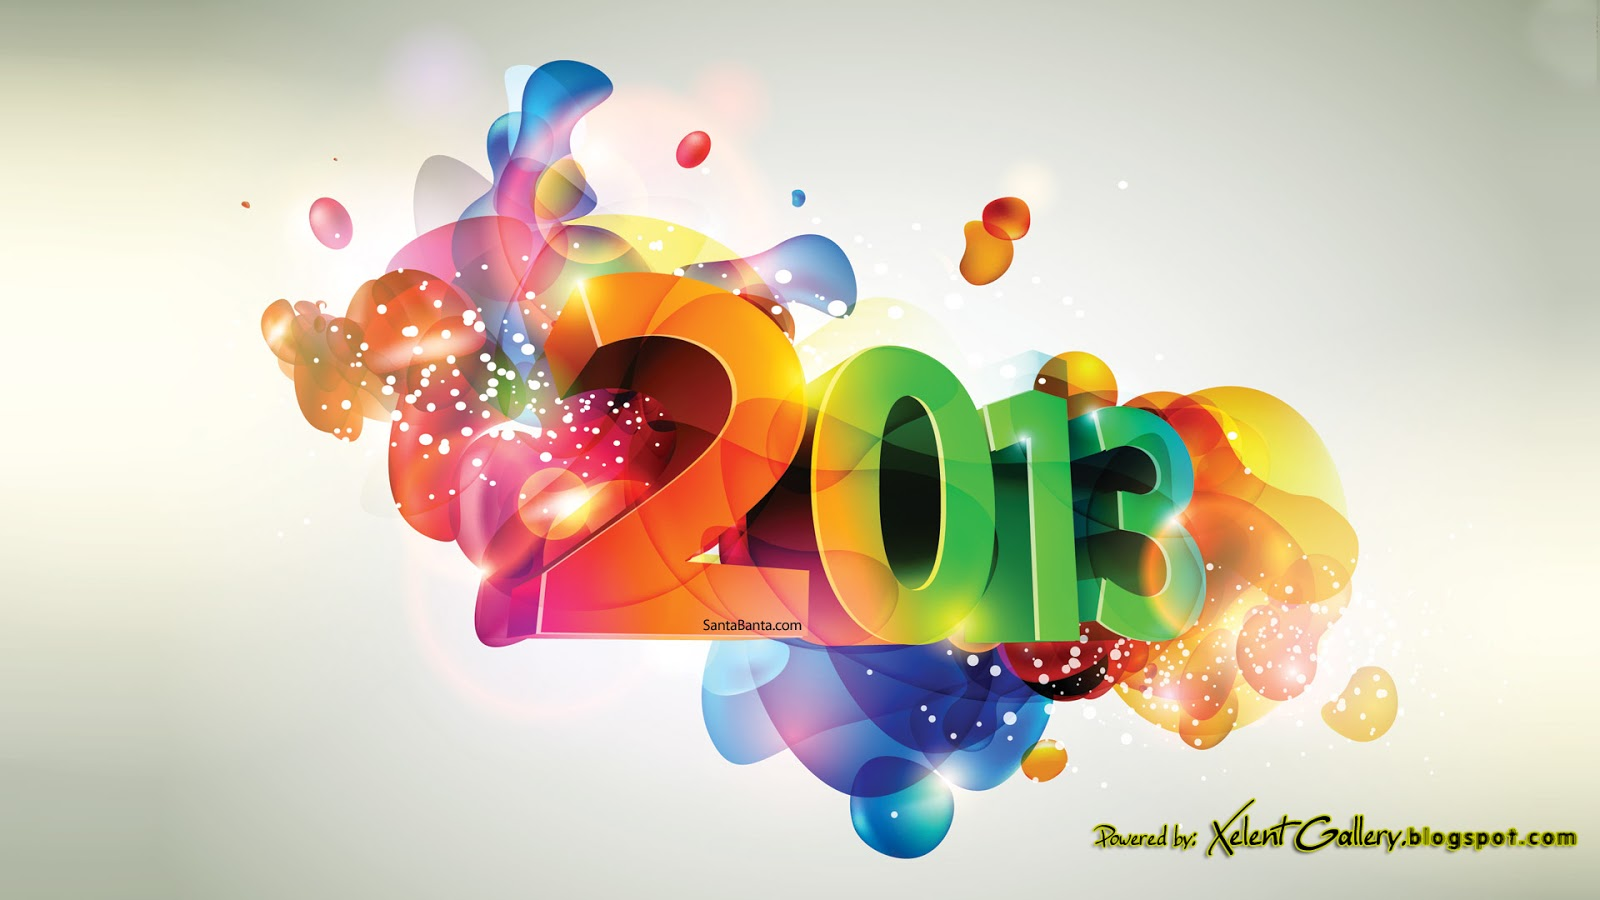 http://1.bp.blogspot.com/-dyUN_5NTE4A/UNyEciJ5AgI/AAAAAAAACBs/6CwGQyojZ3E/s1600/Happy+New+Year+2013+HD+Wallpapers+(3).JPG